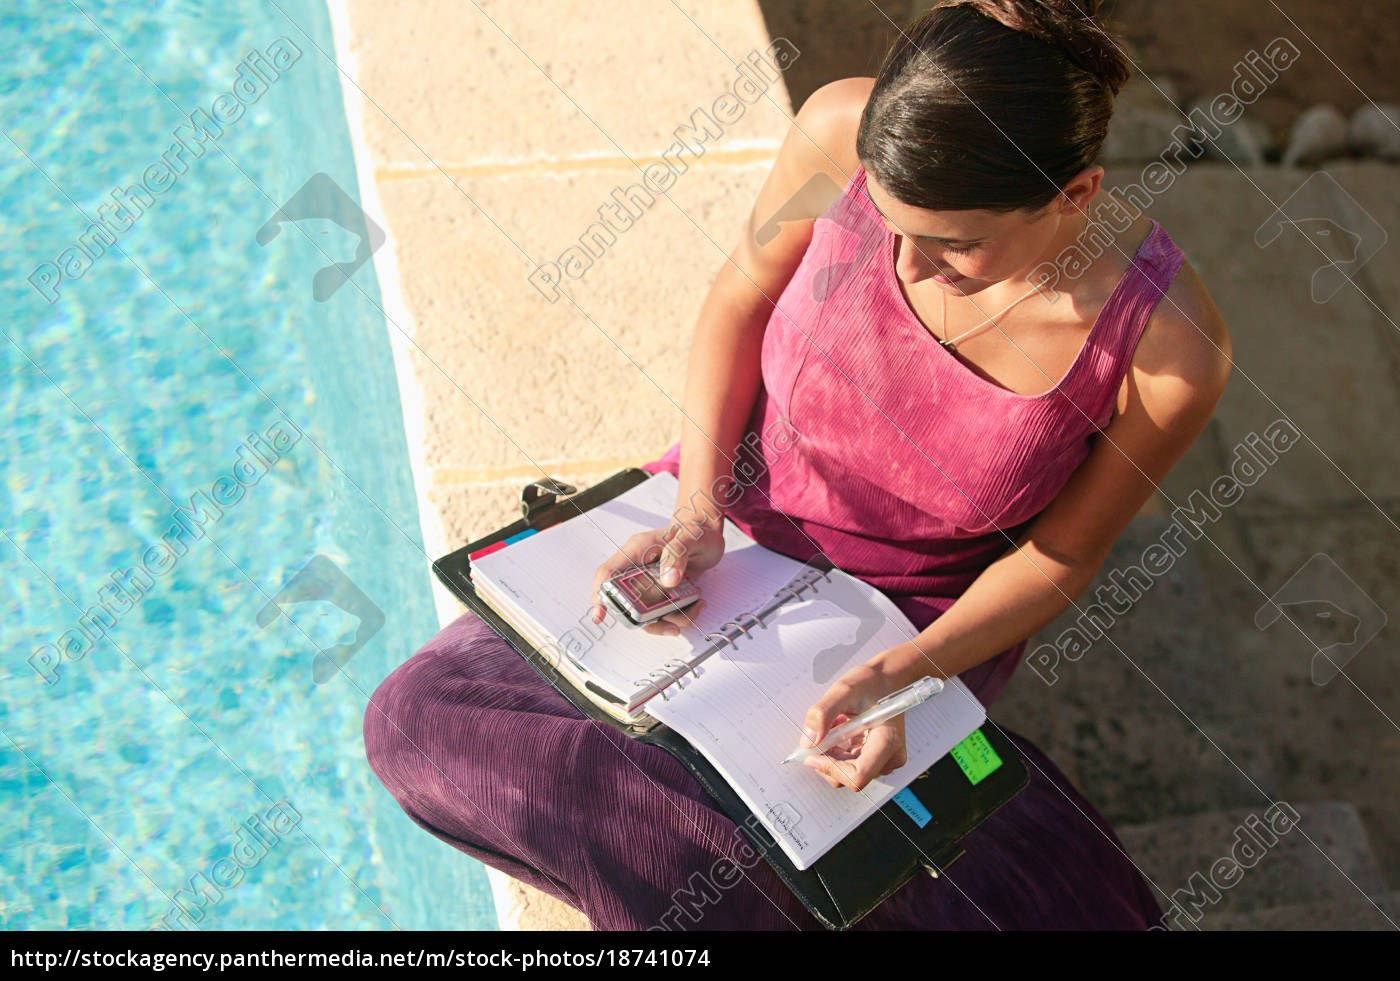 woman, by, swimming, pool, with, cellphone - 18741074